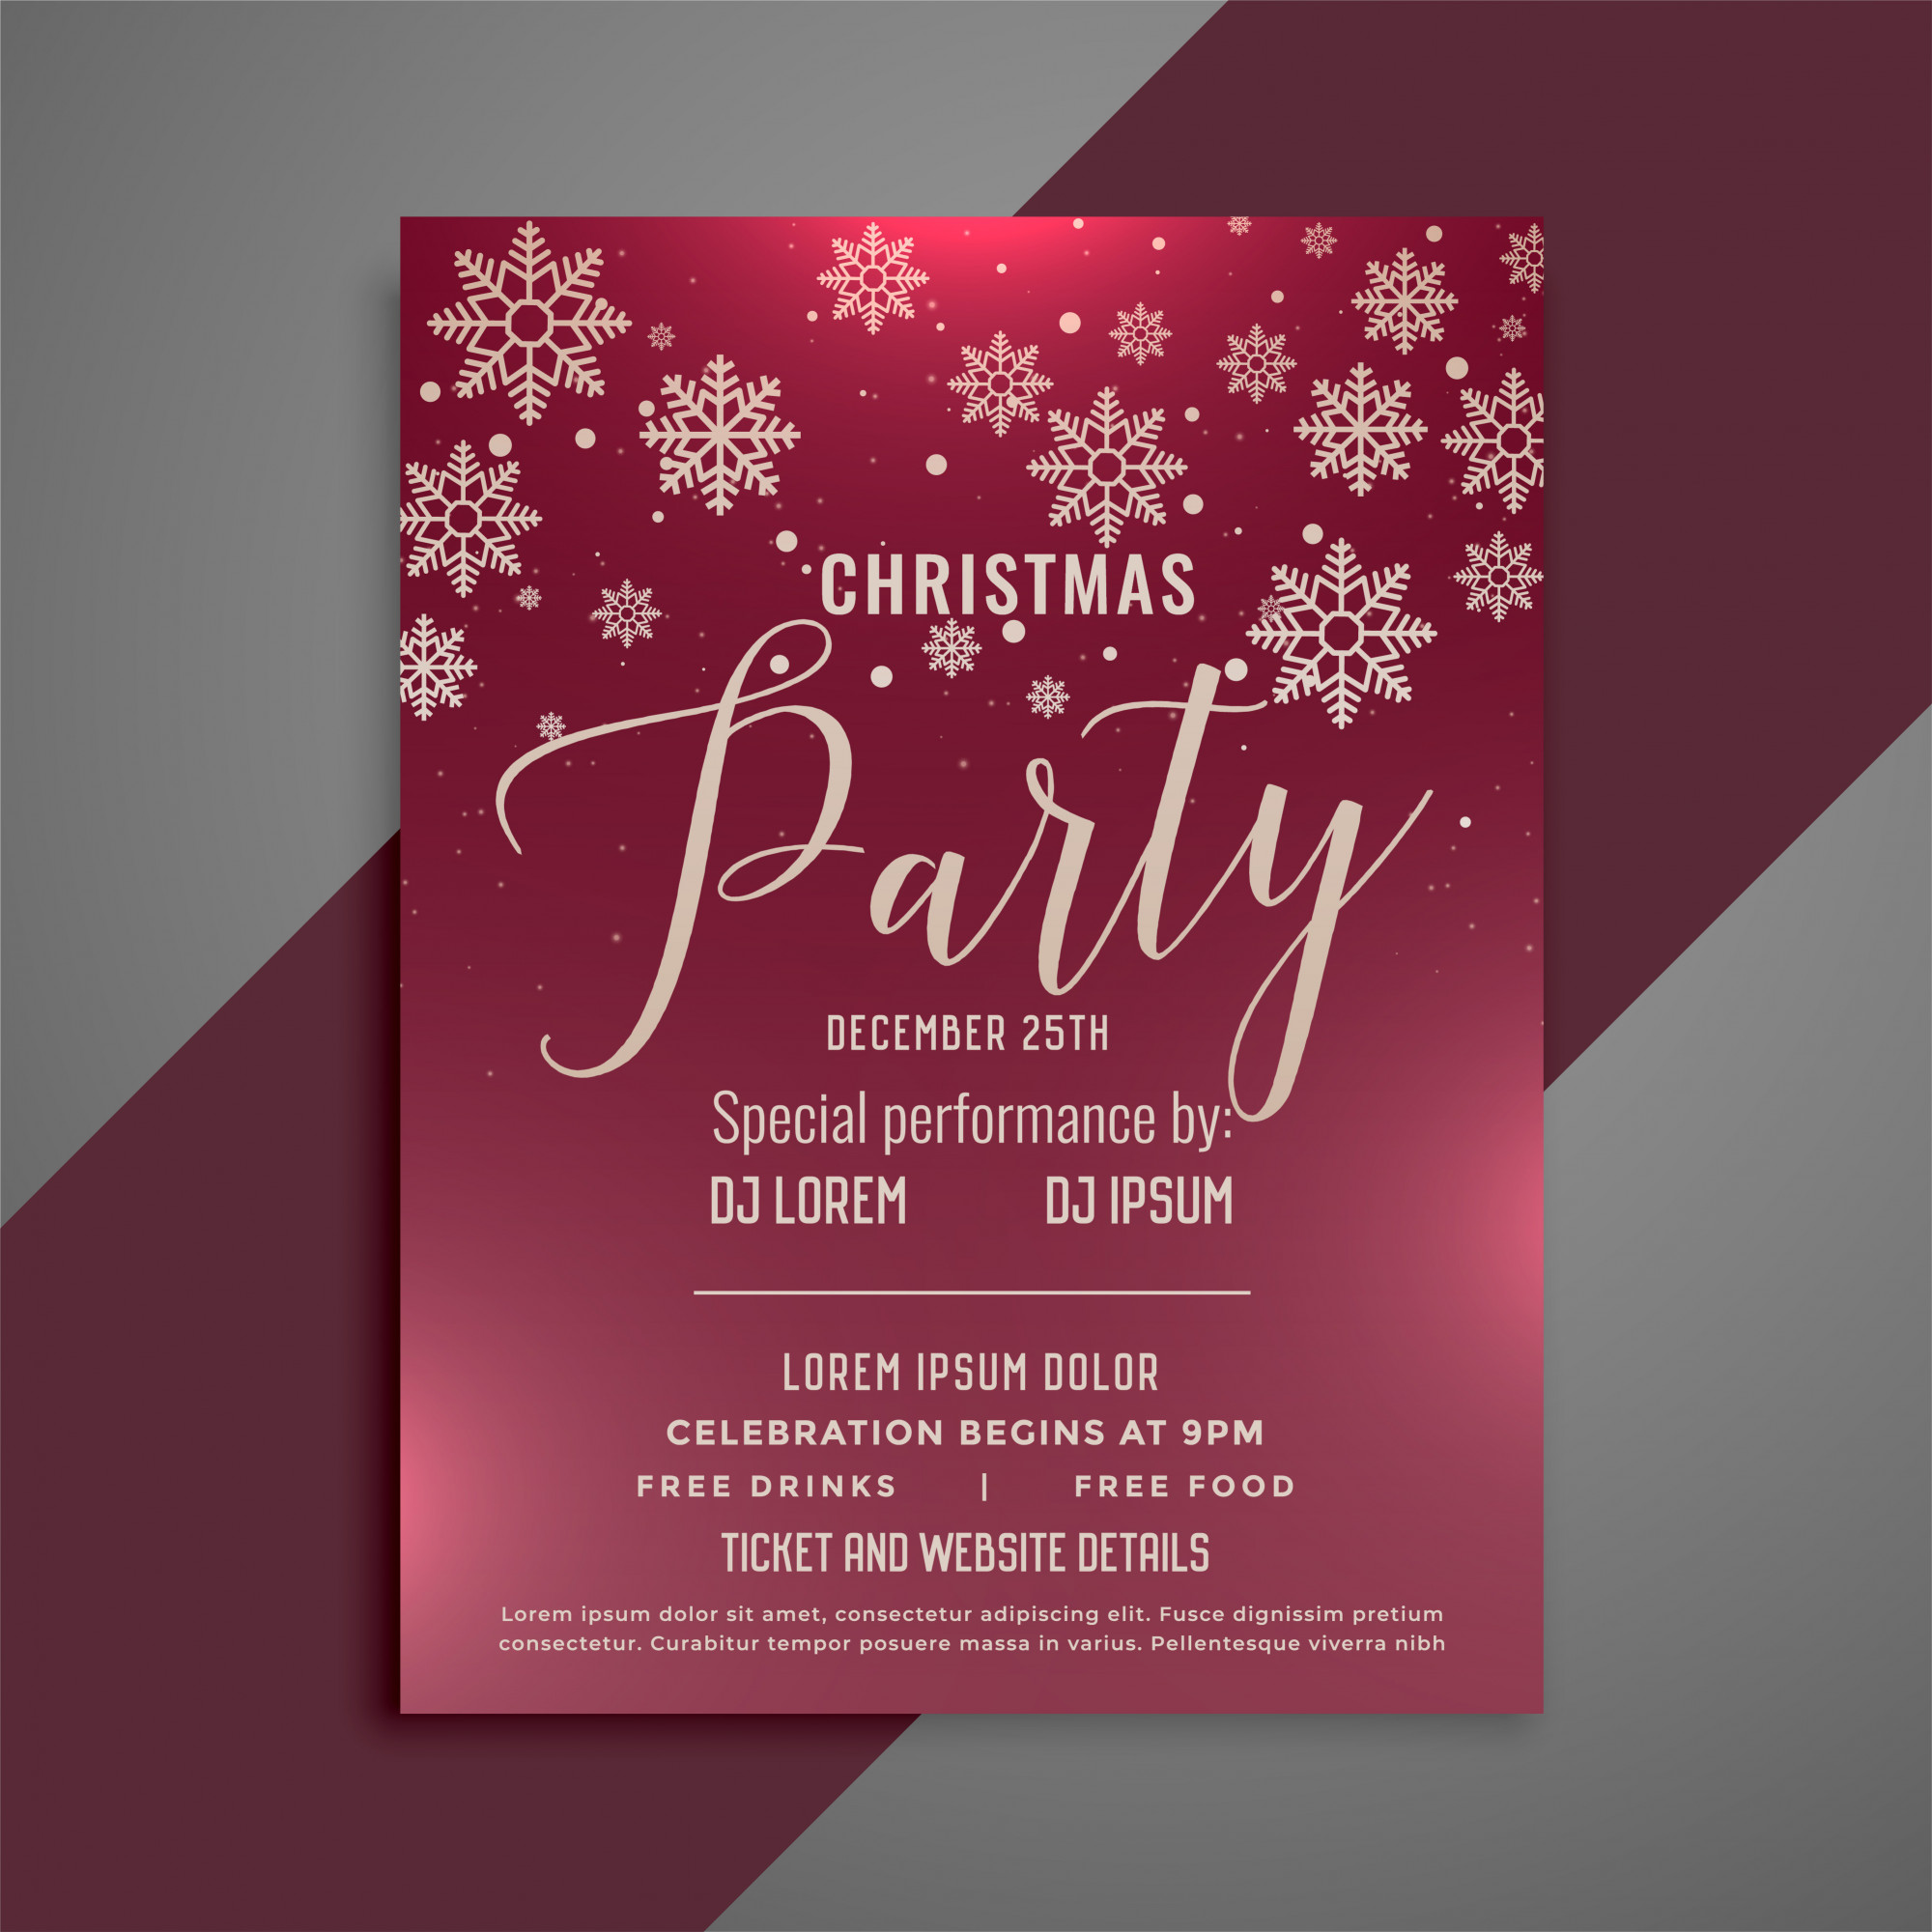 Merry christmas party celebration flyer design